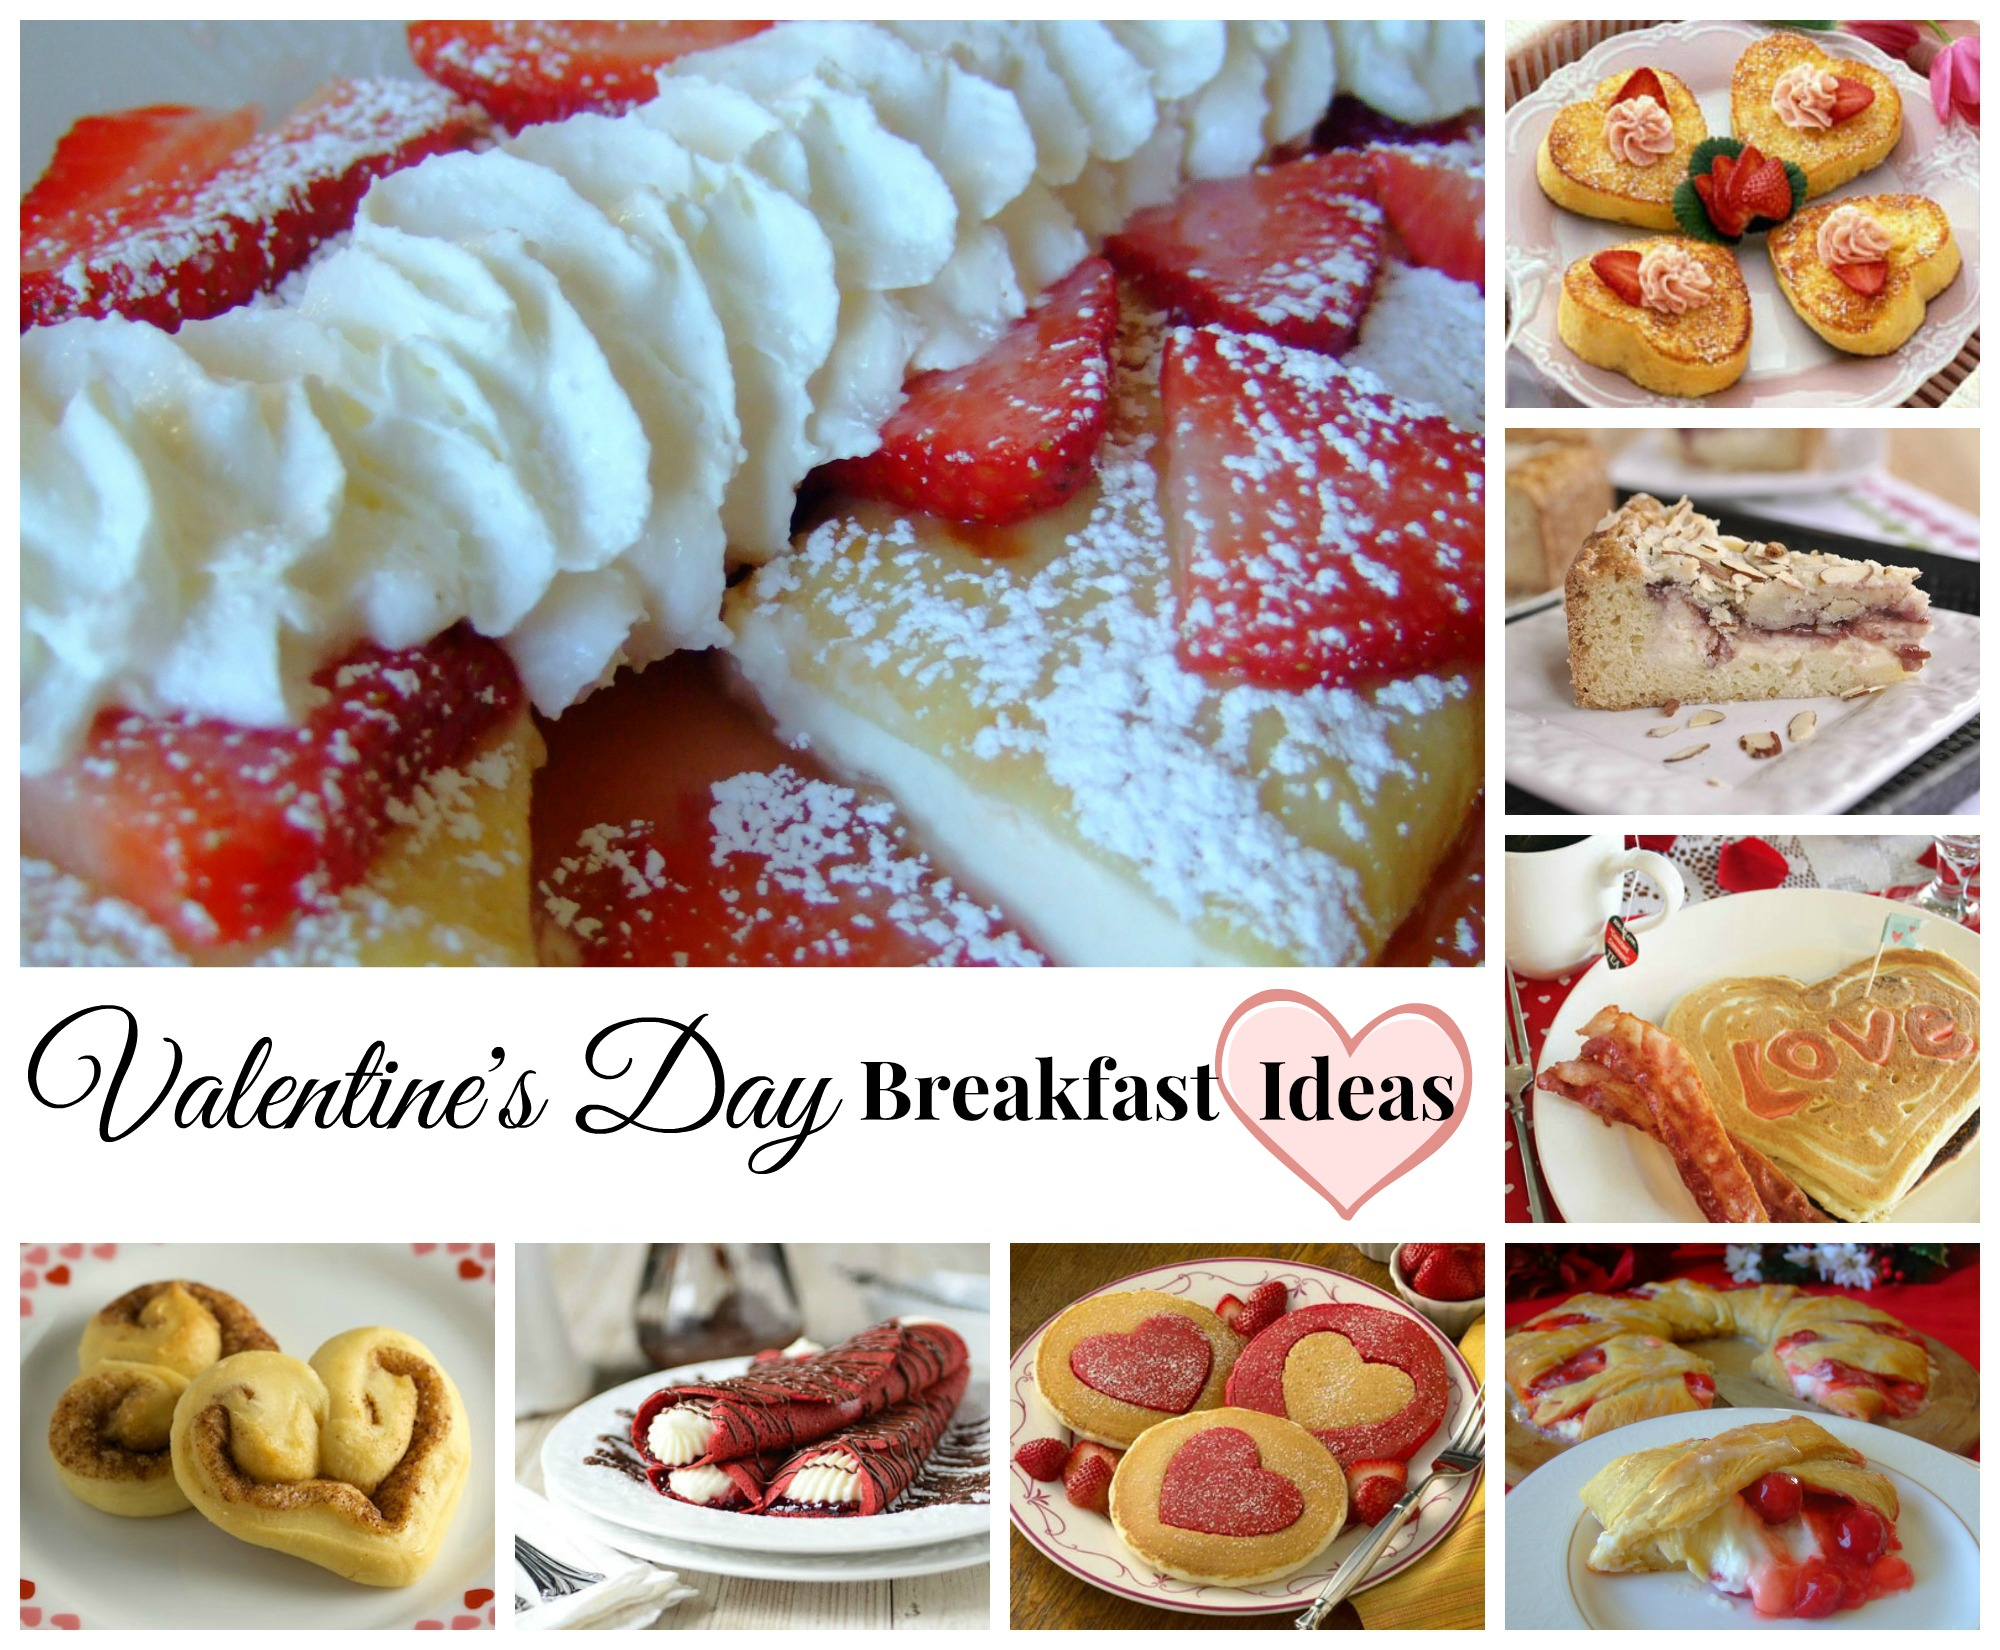 valentine's day breakfast ideas and recipes | celebrating holidays, Ideas